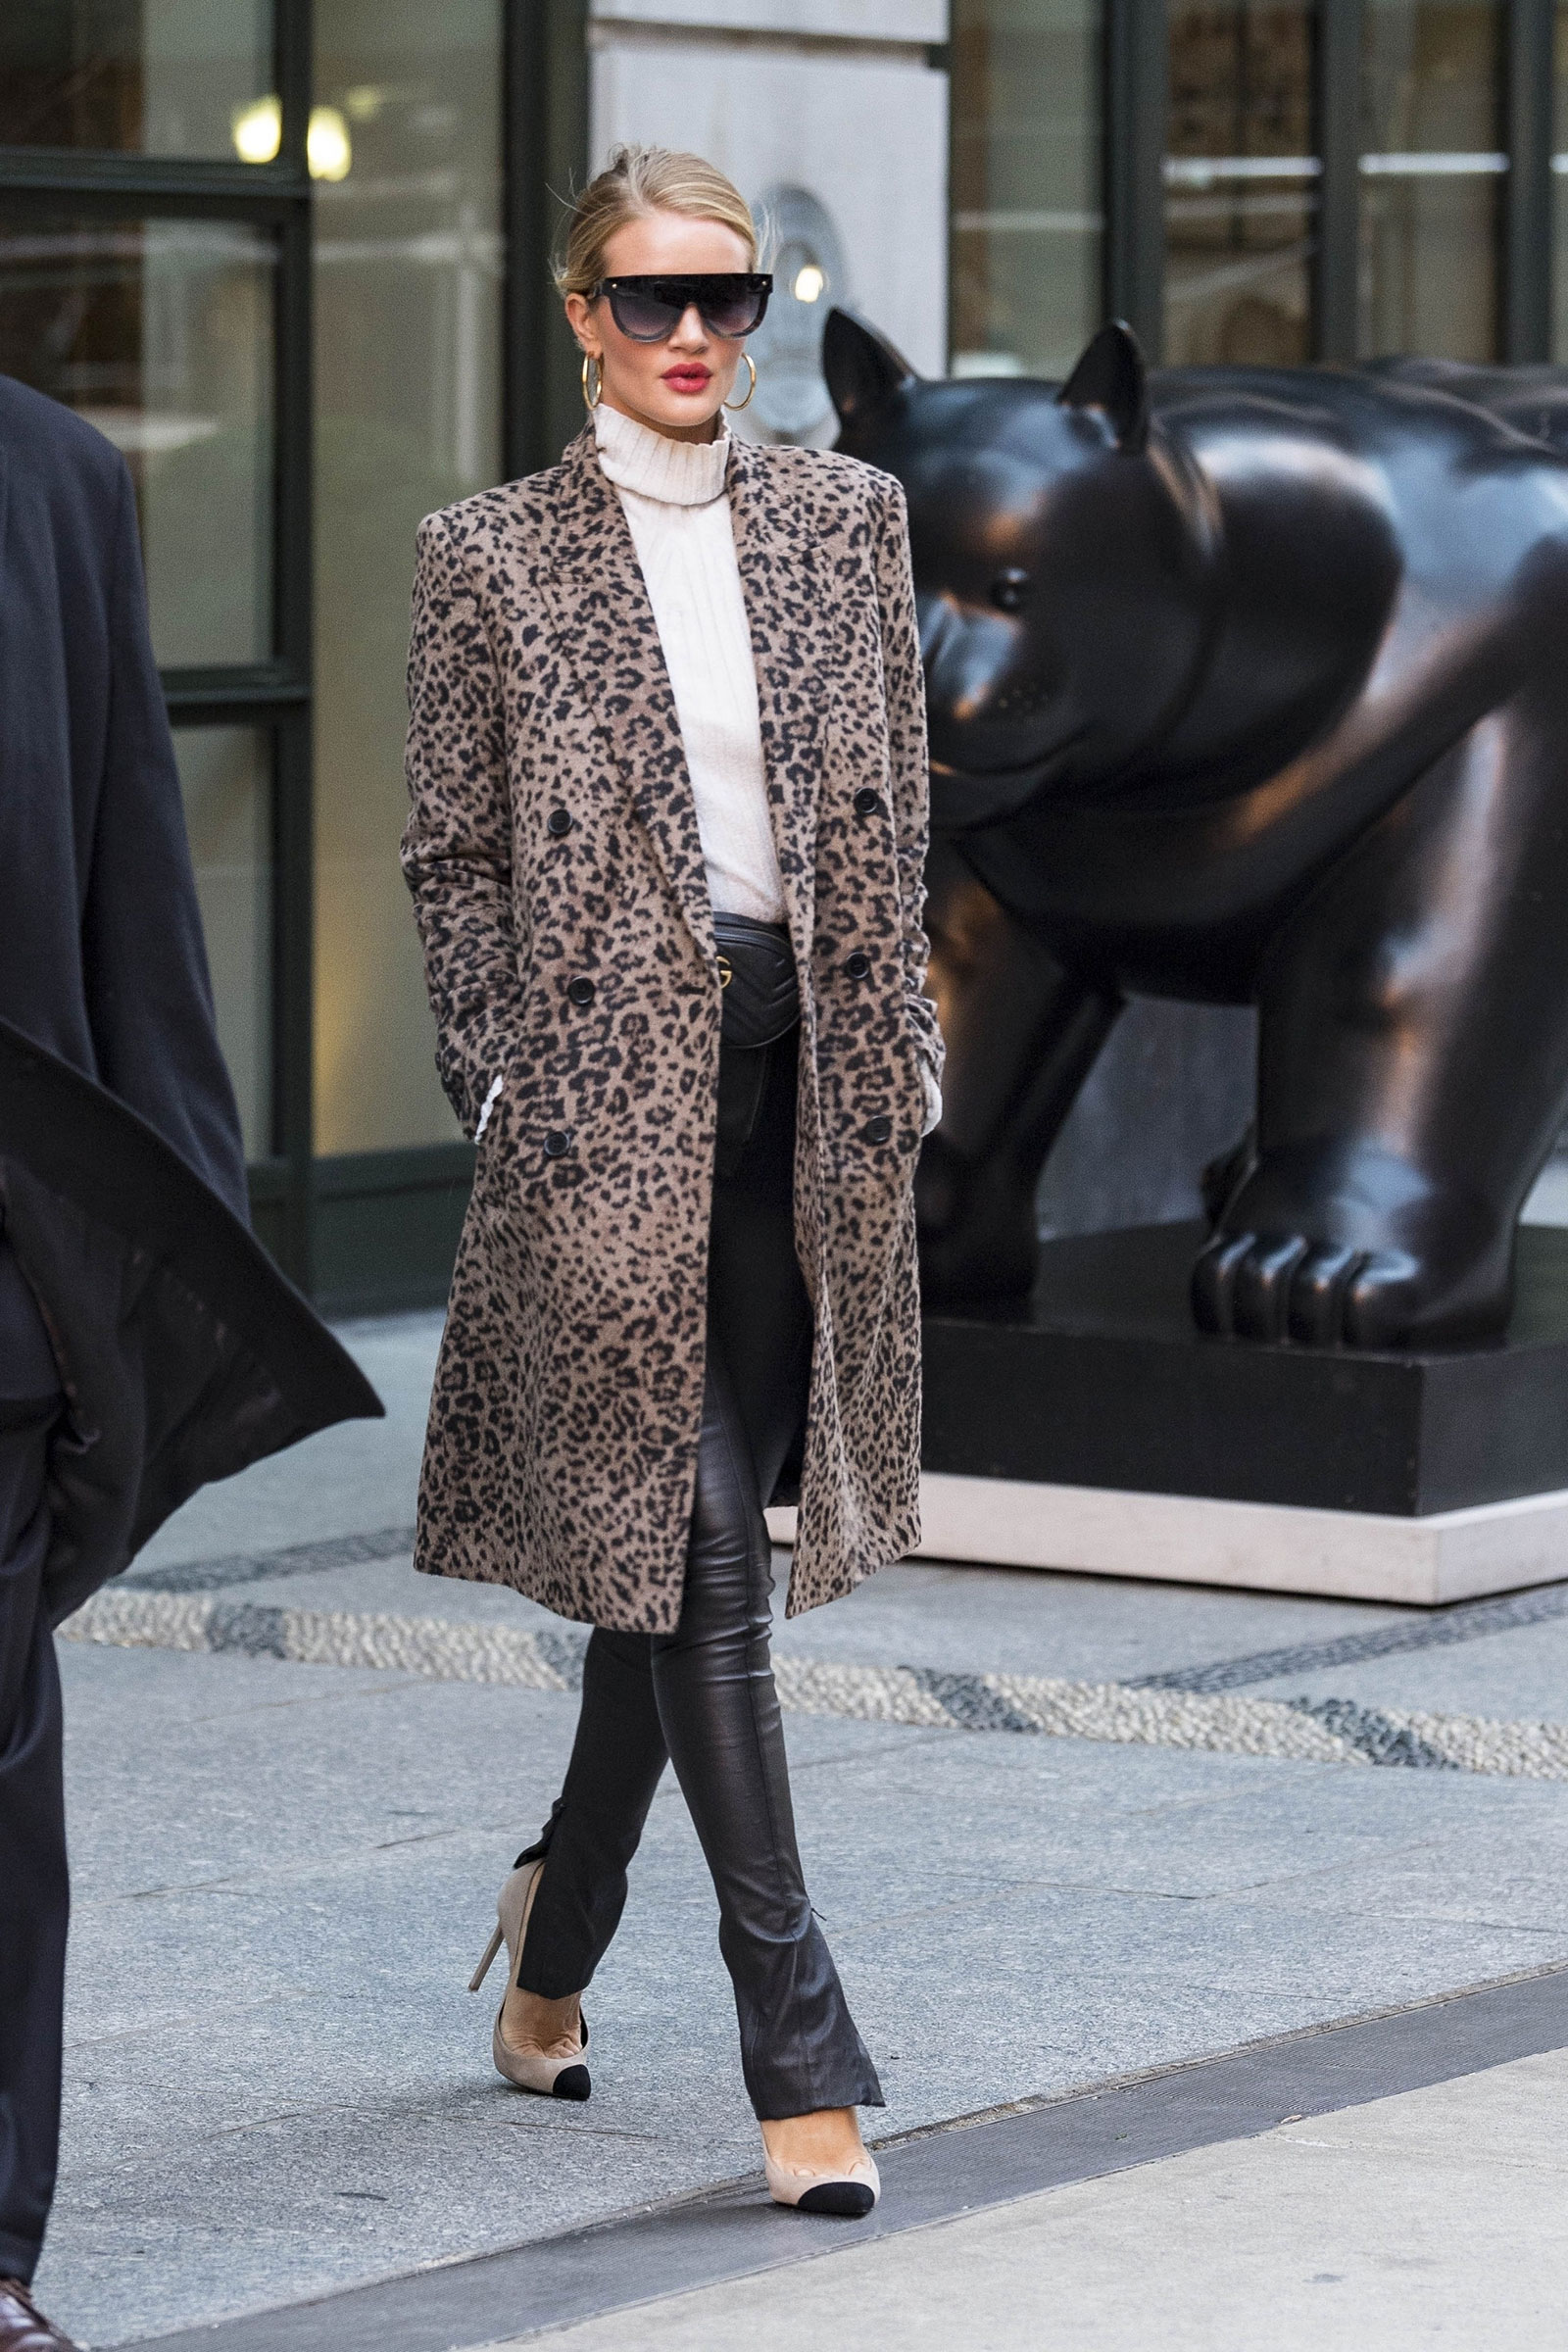 Rosie Huntington-Whiteley wears a leopard coat with leather pants and cap-toe pumps